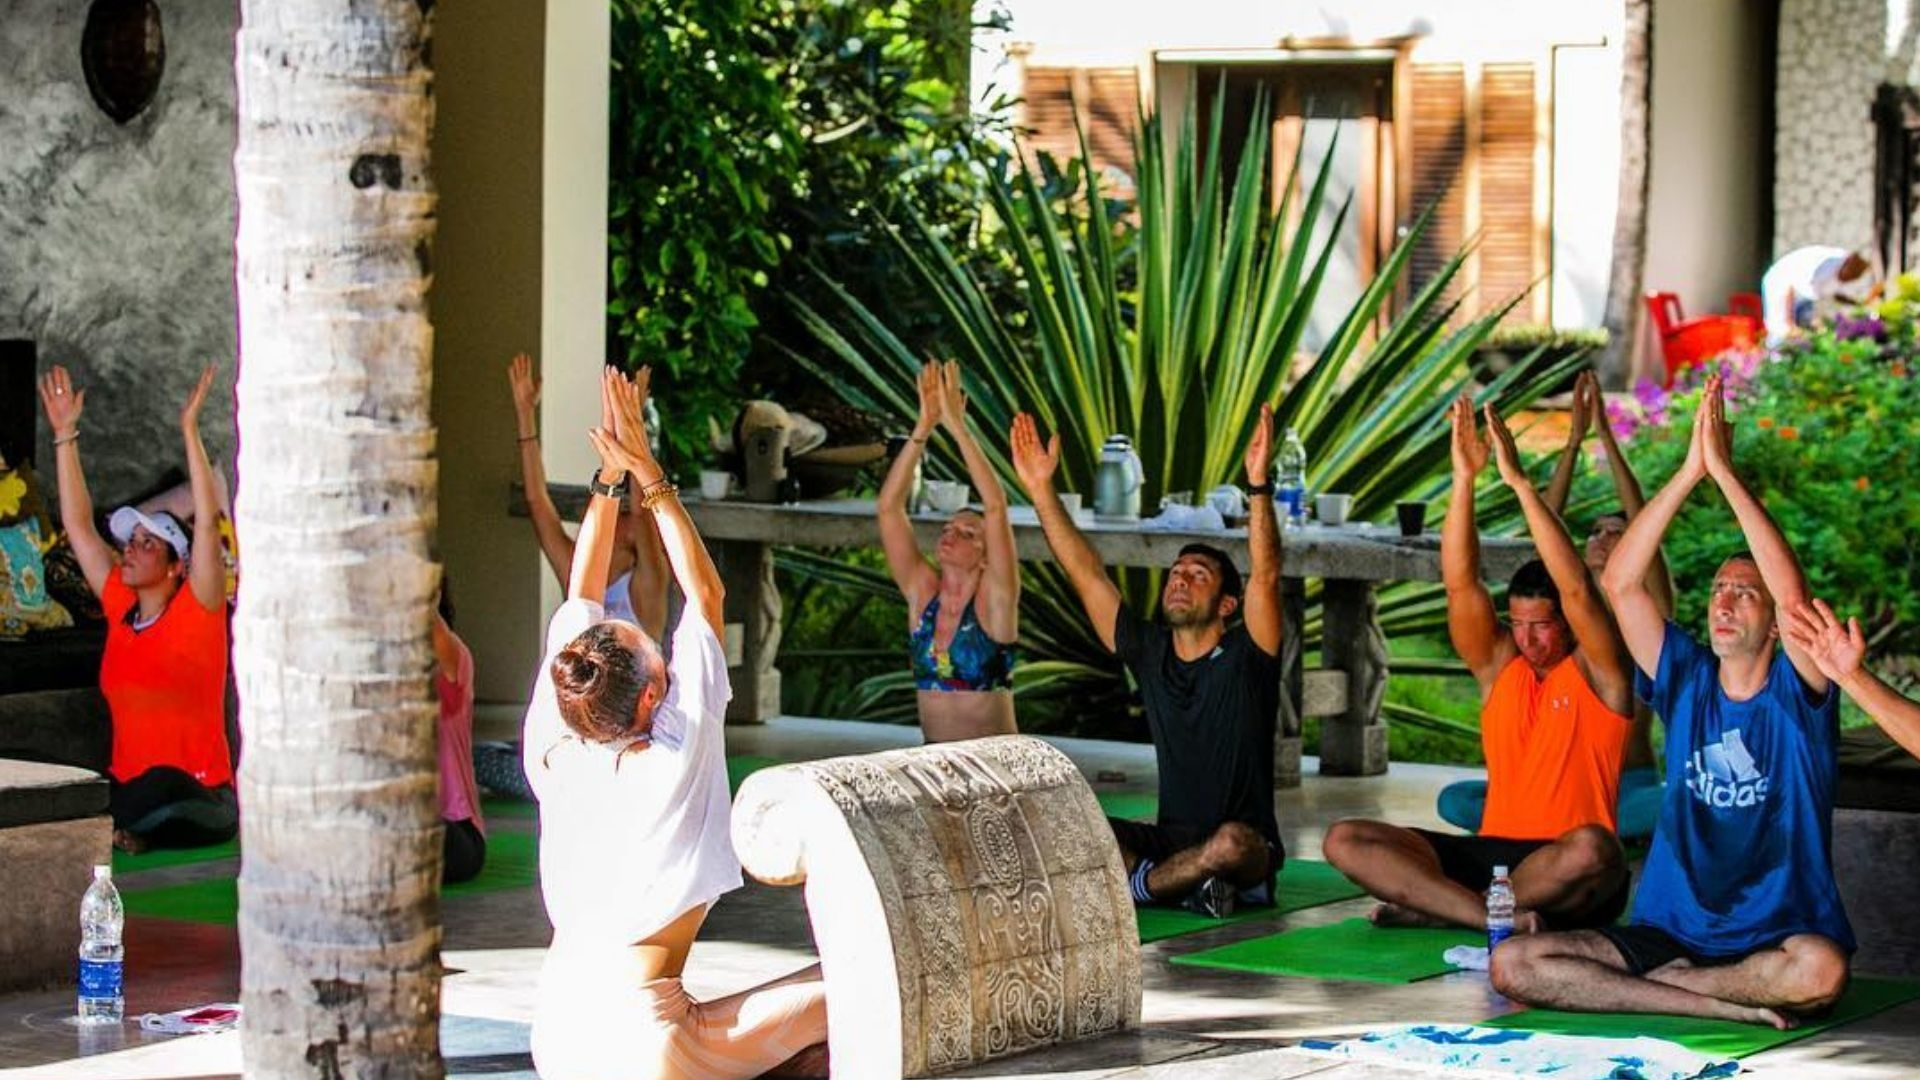 3 Luxury Wellness Retreats For Having Fun While Getting Fit